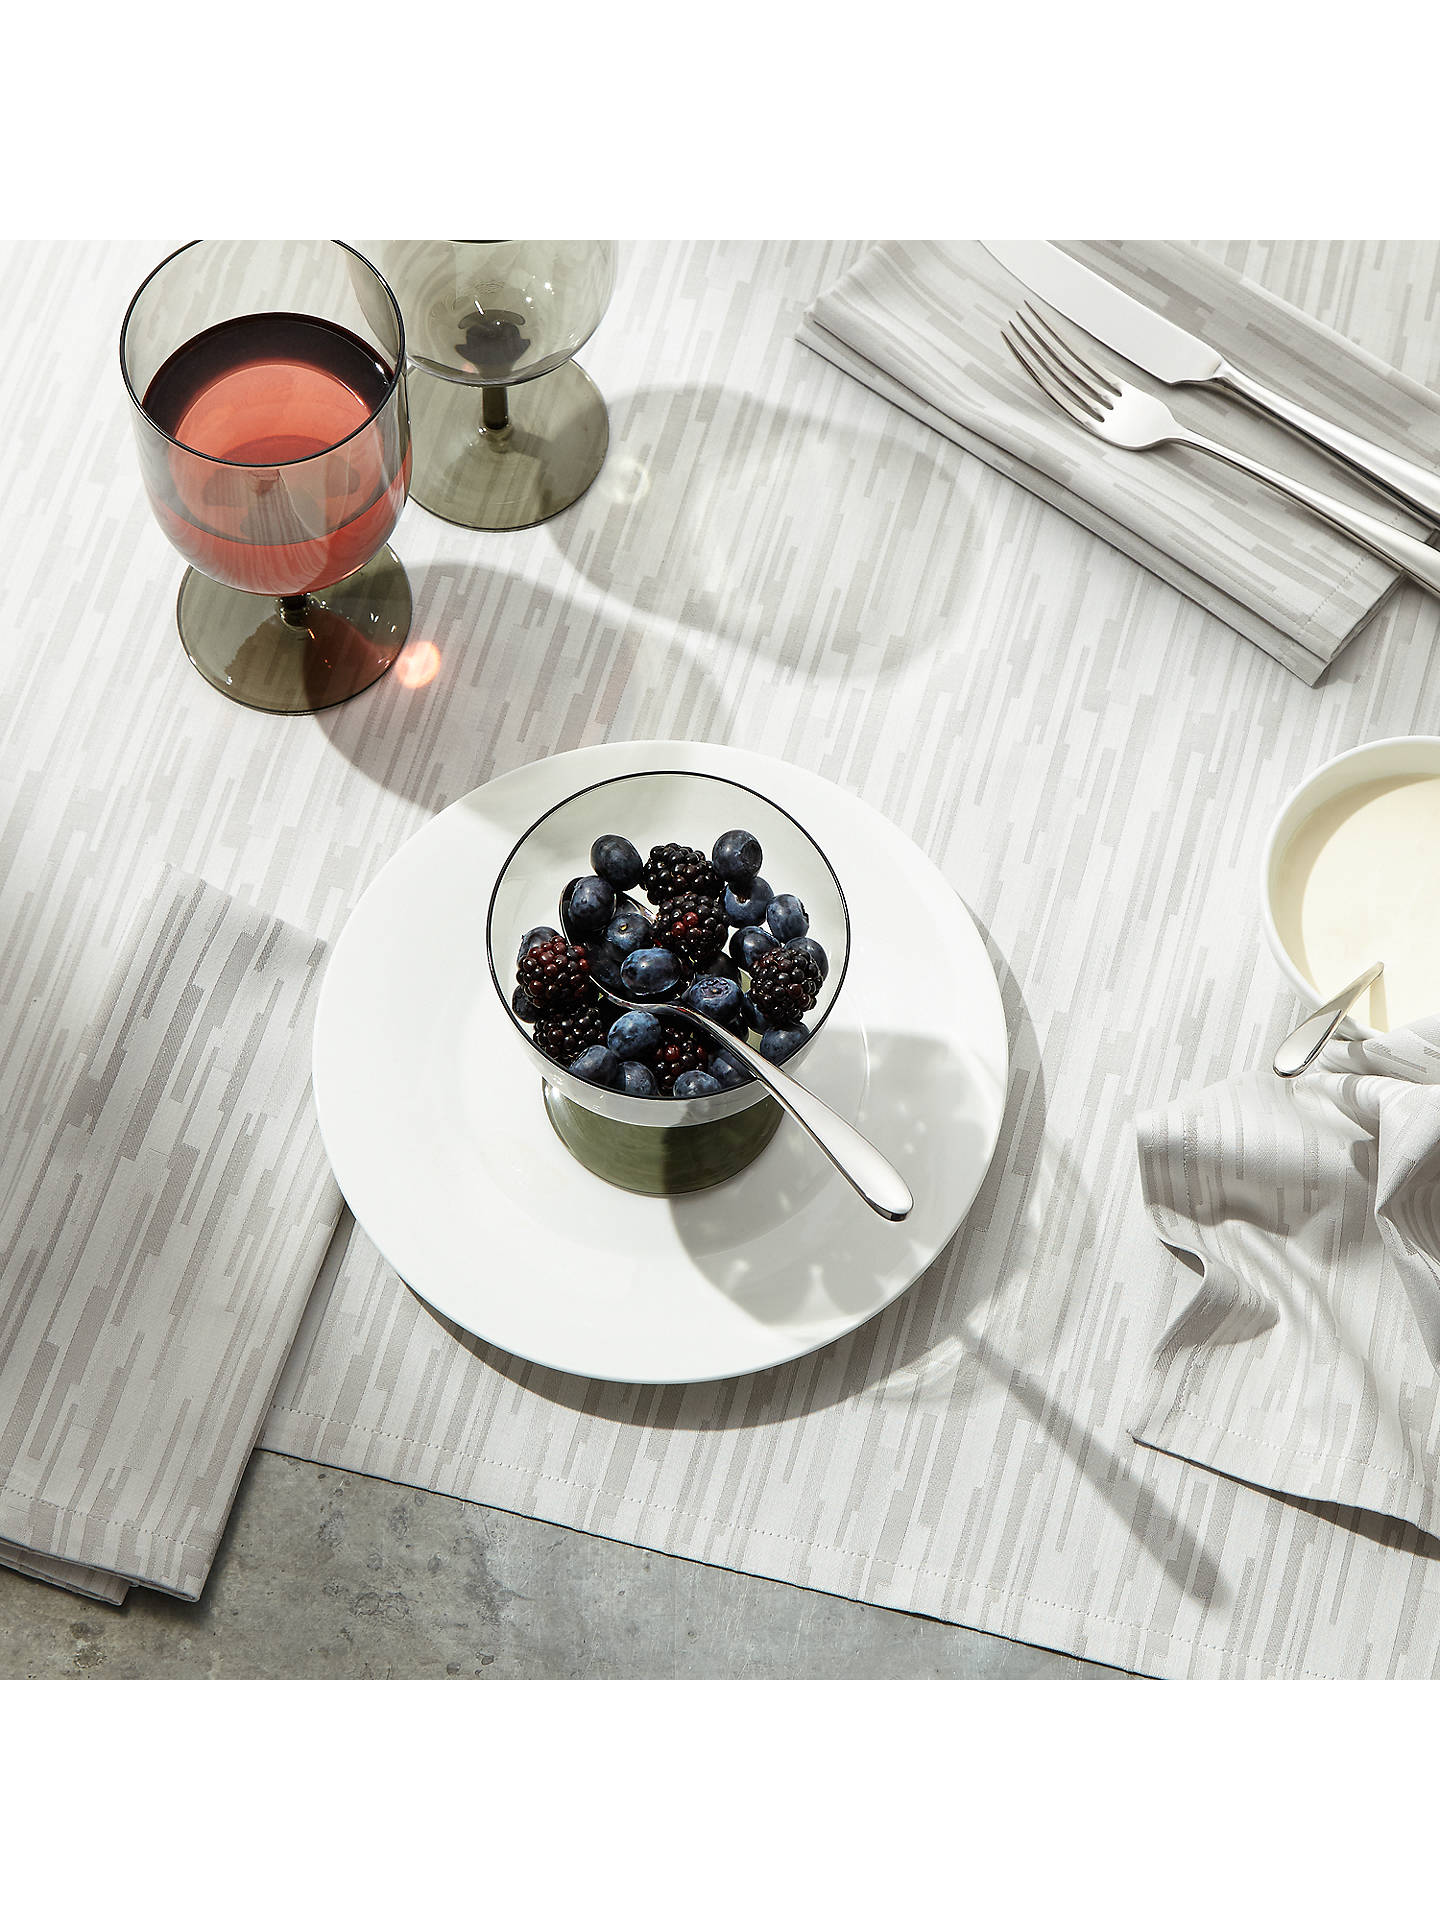 BuyJohn Lewis & Partners Outline Dessert Spoon Online at johnlewis.com